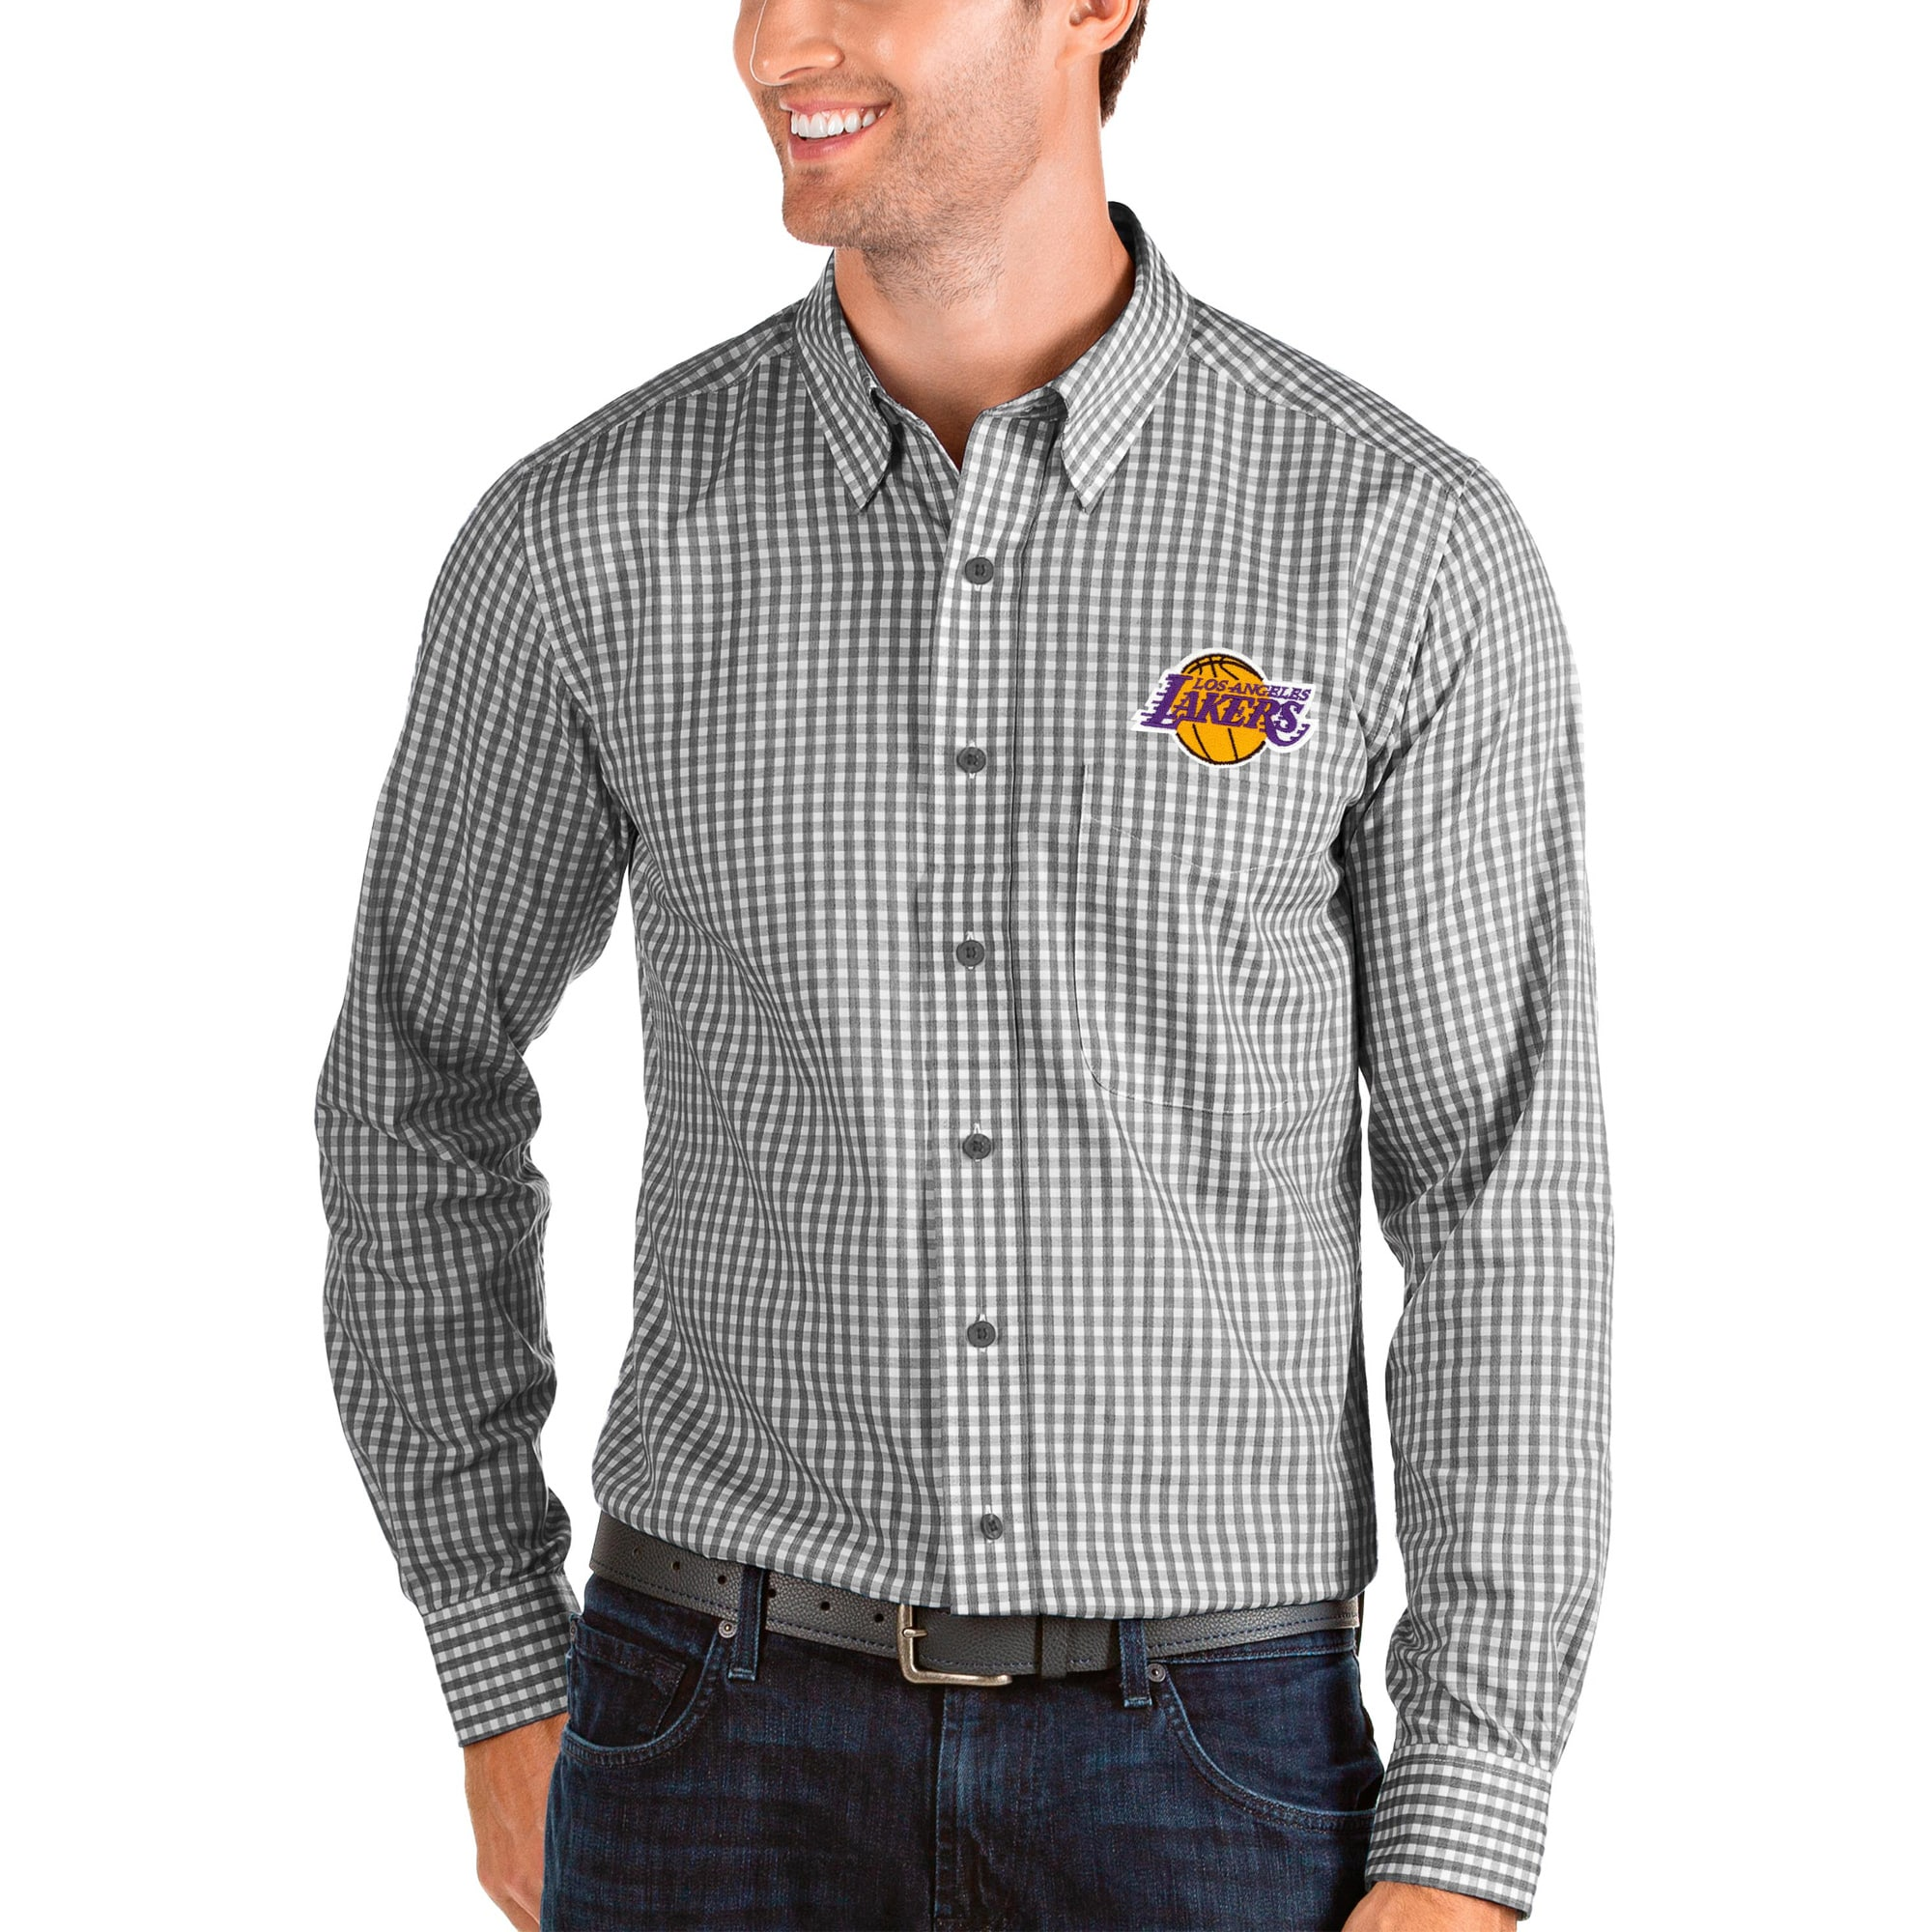 Los Angeles Lakers Antigua Structure Long Sleeve Button-Up Shirt - Black/White